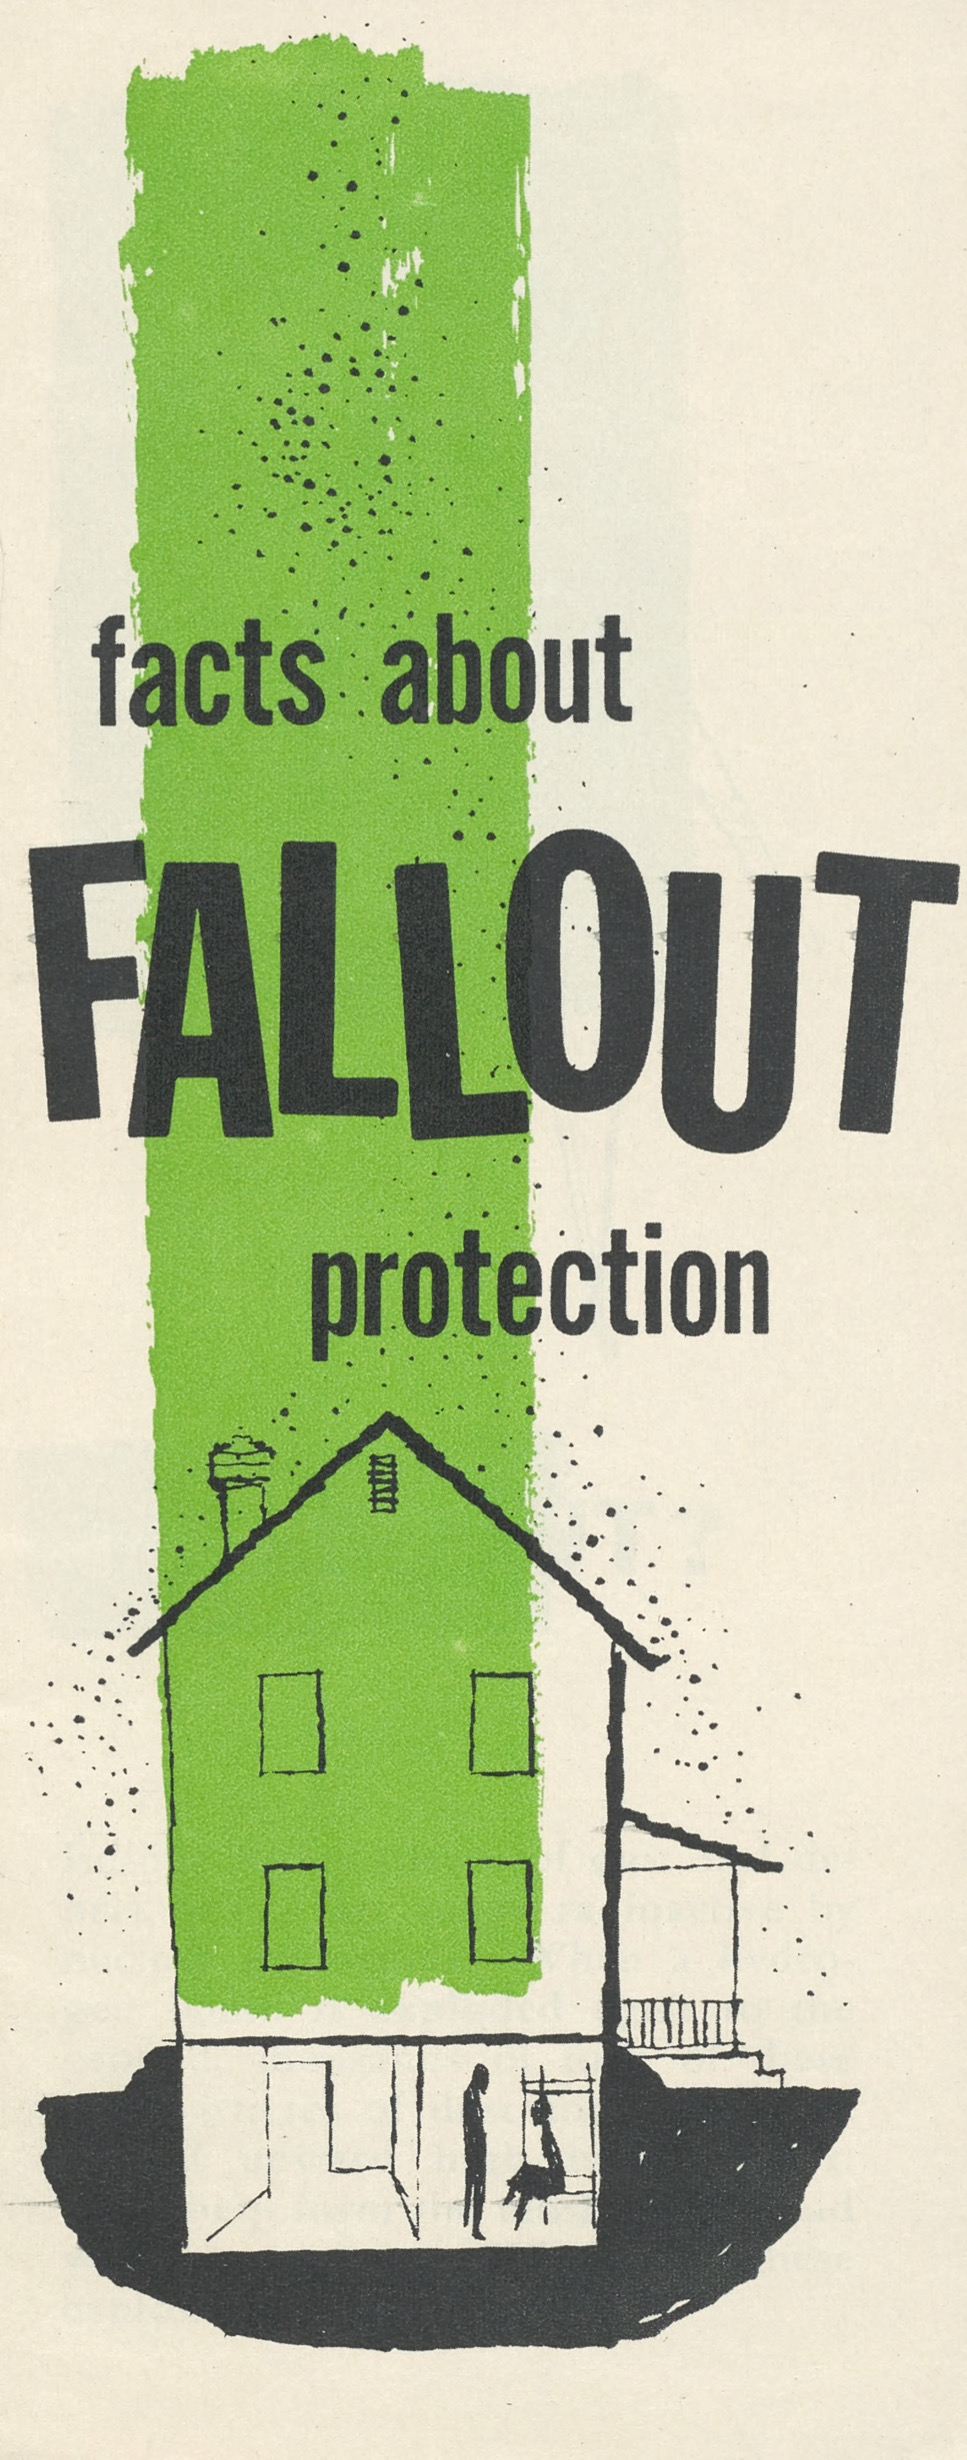 Facts about Fallout protection 1961